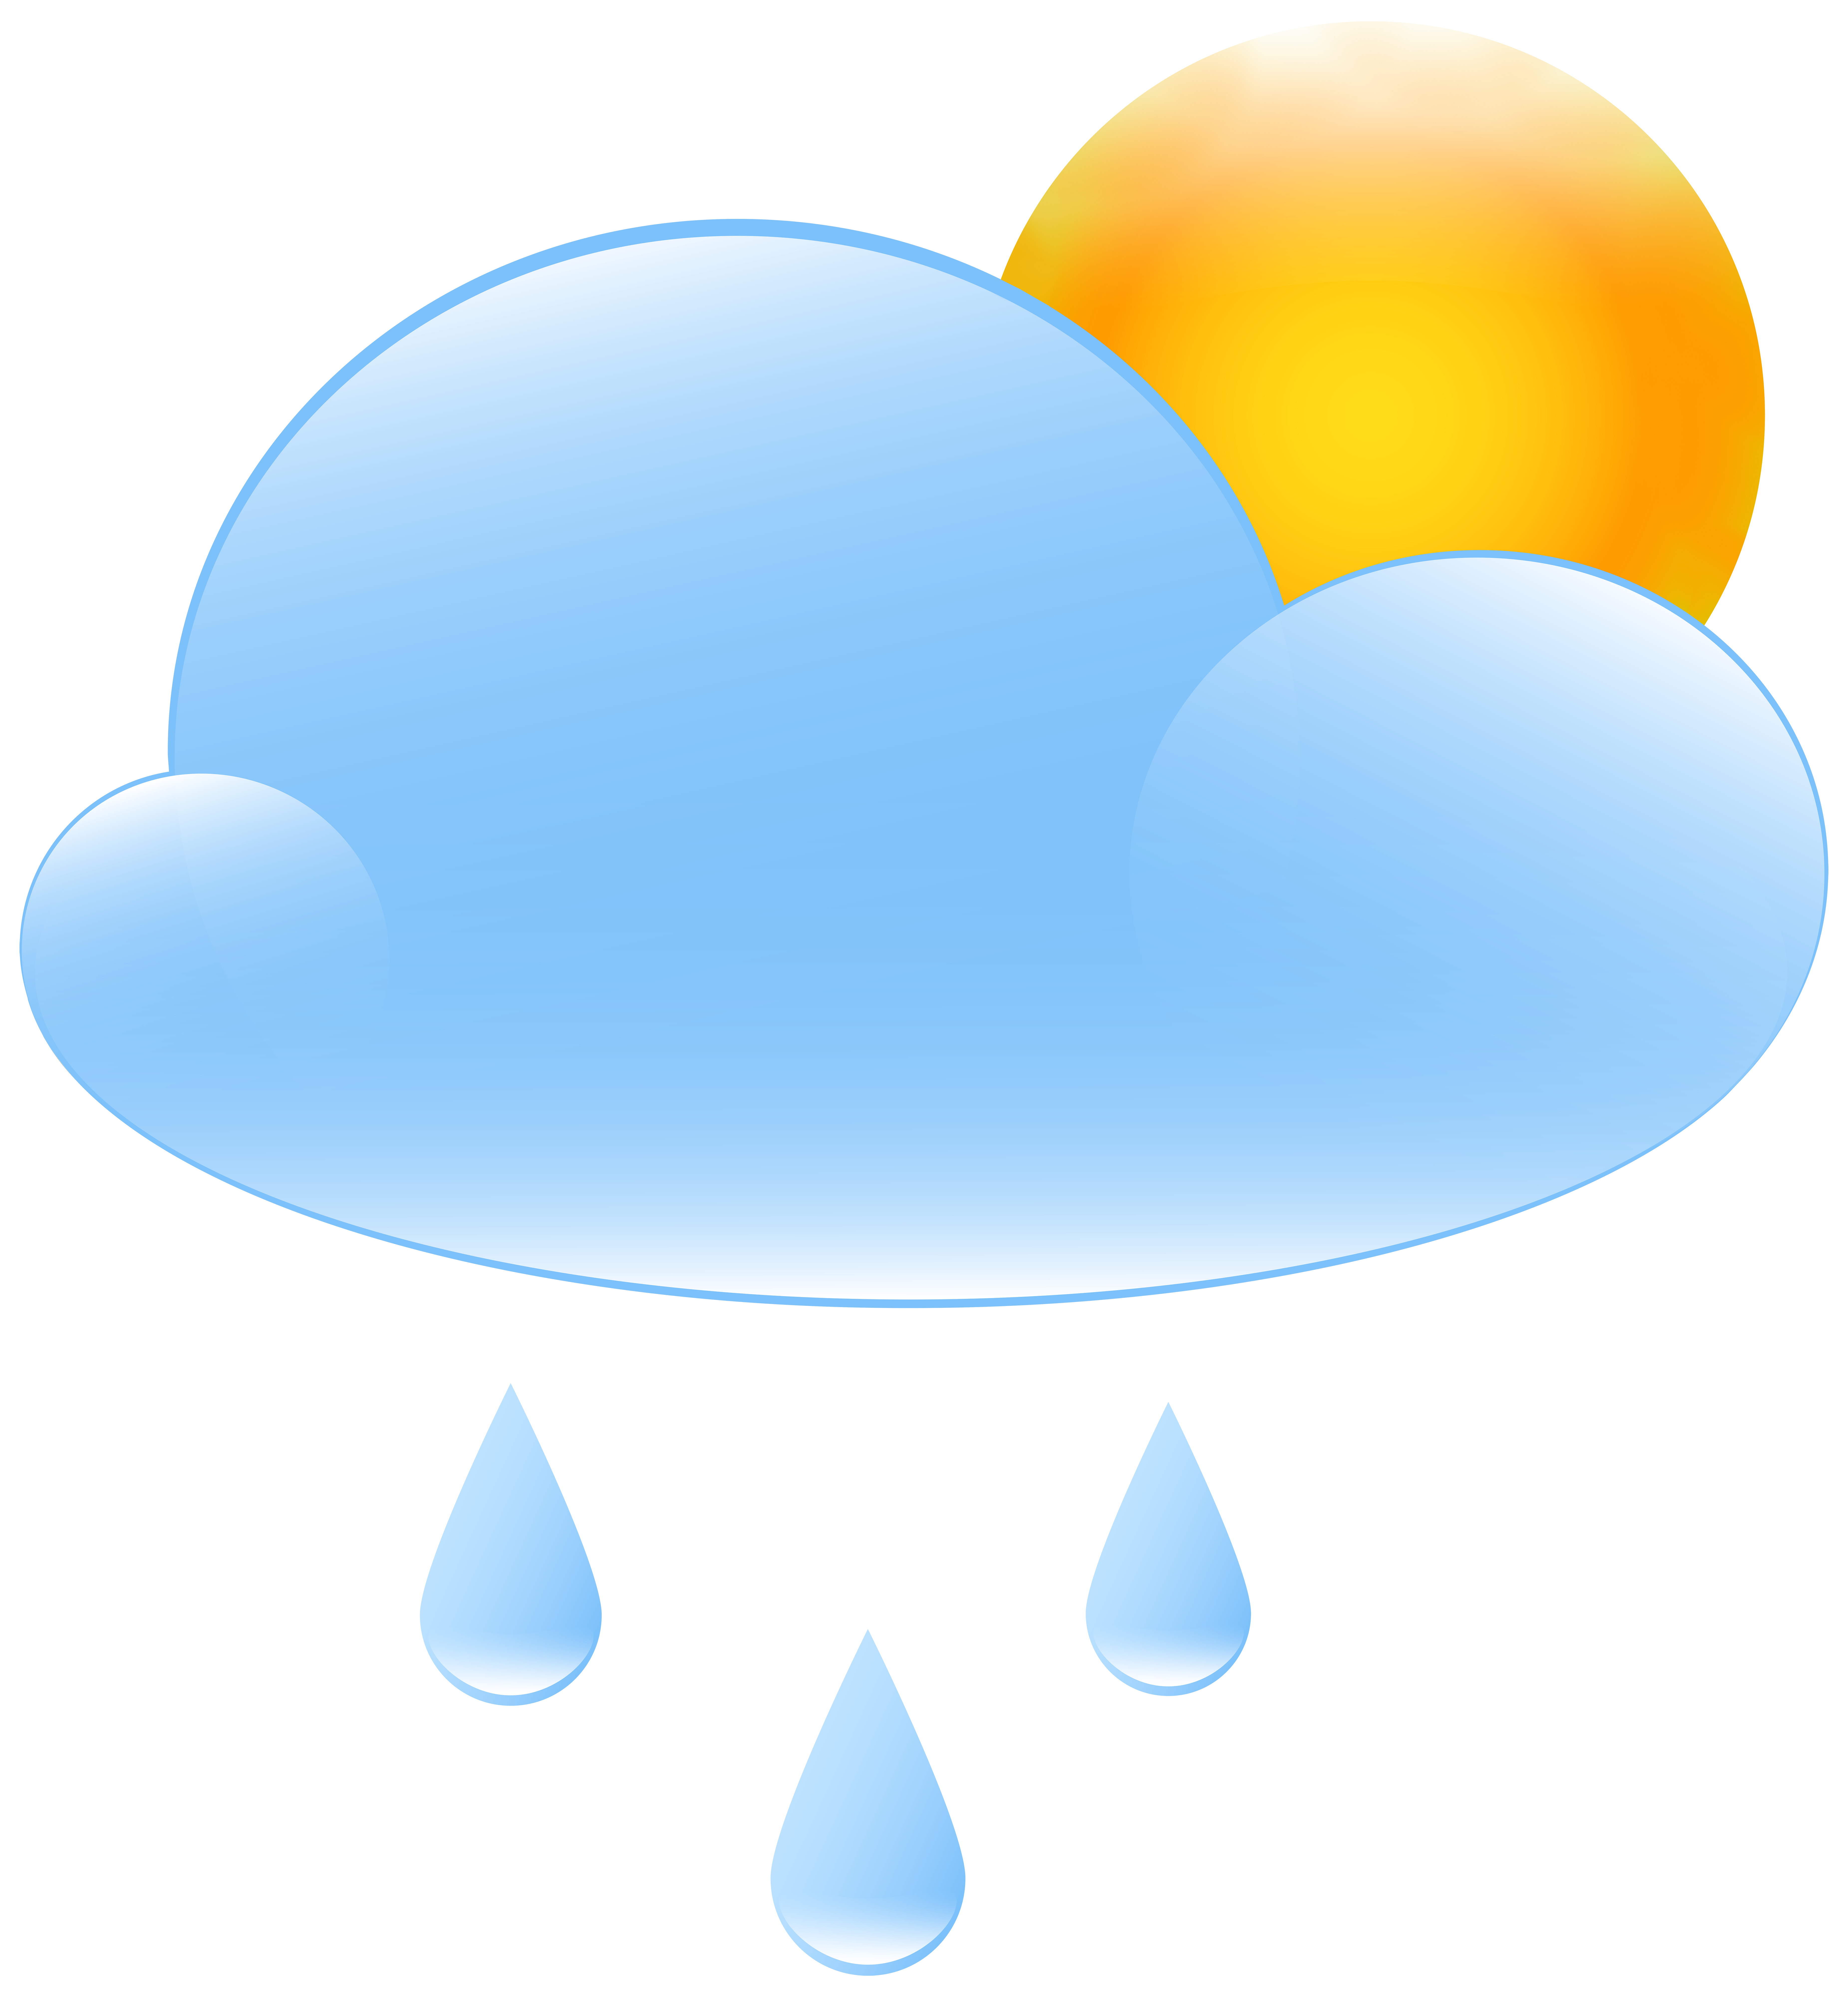 picture transparent library Cloudy with sun and. Partly clipart